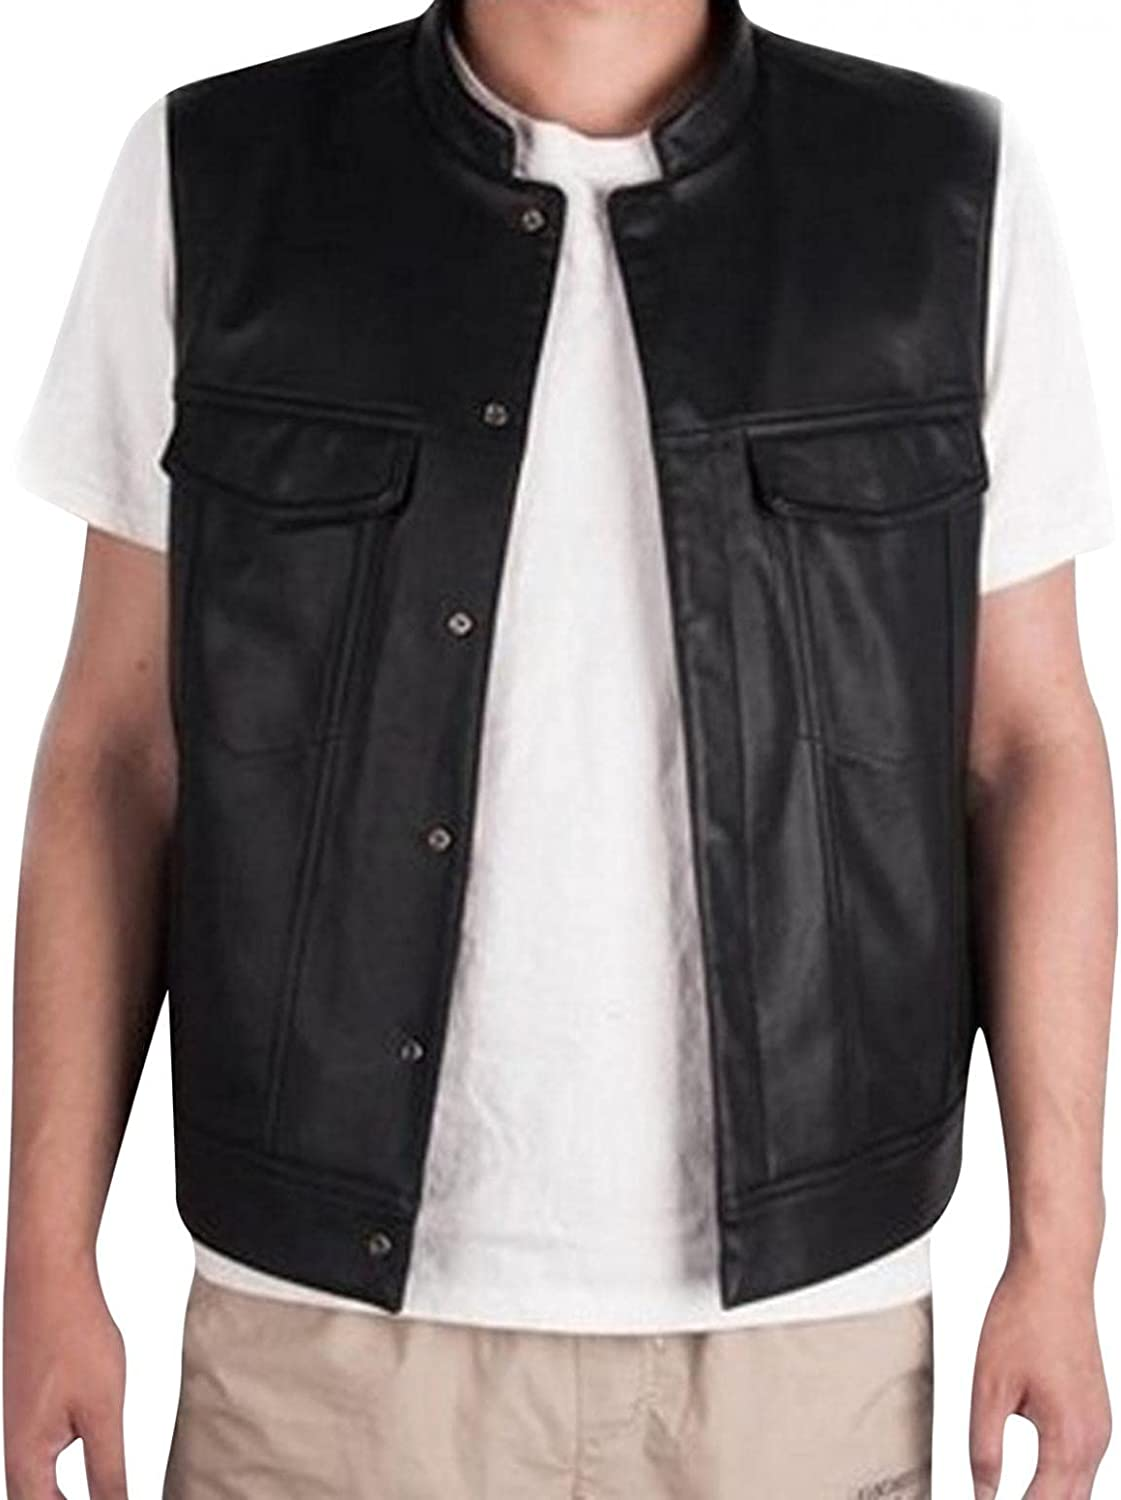 Men's Retro Stand Collar V-neck Solid Color Pocket Sleeveless Lace-up Button Leather Vest Top Blouse